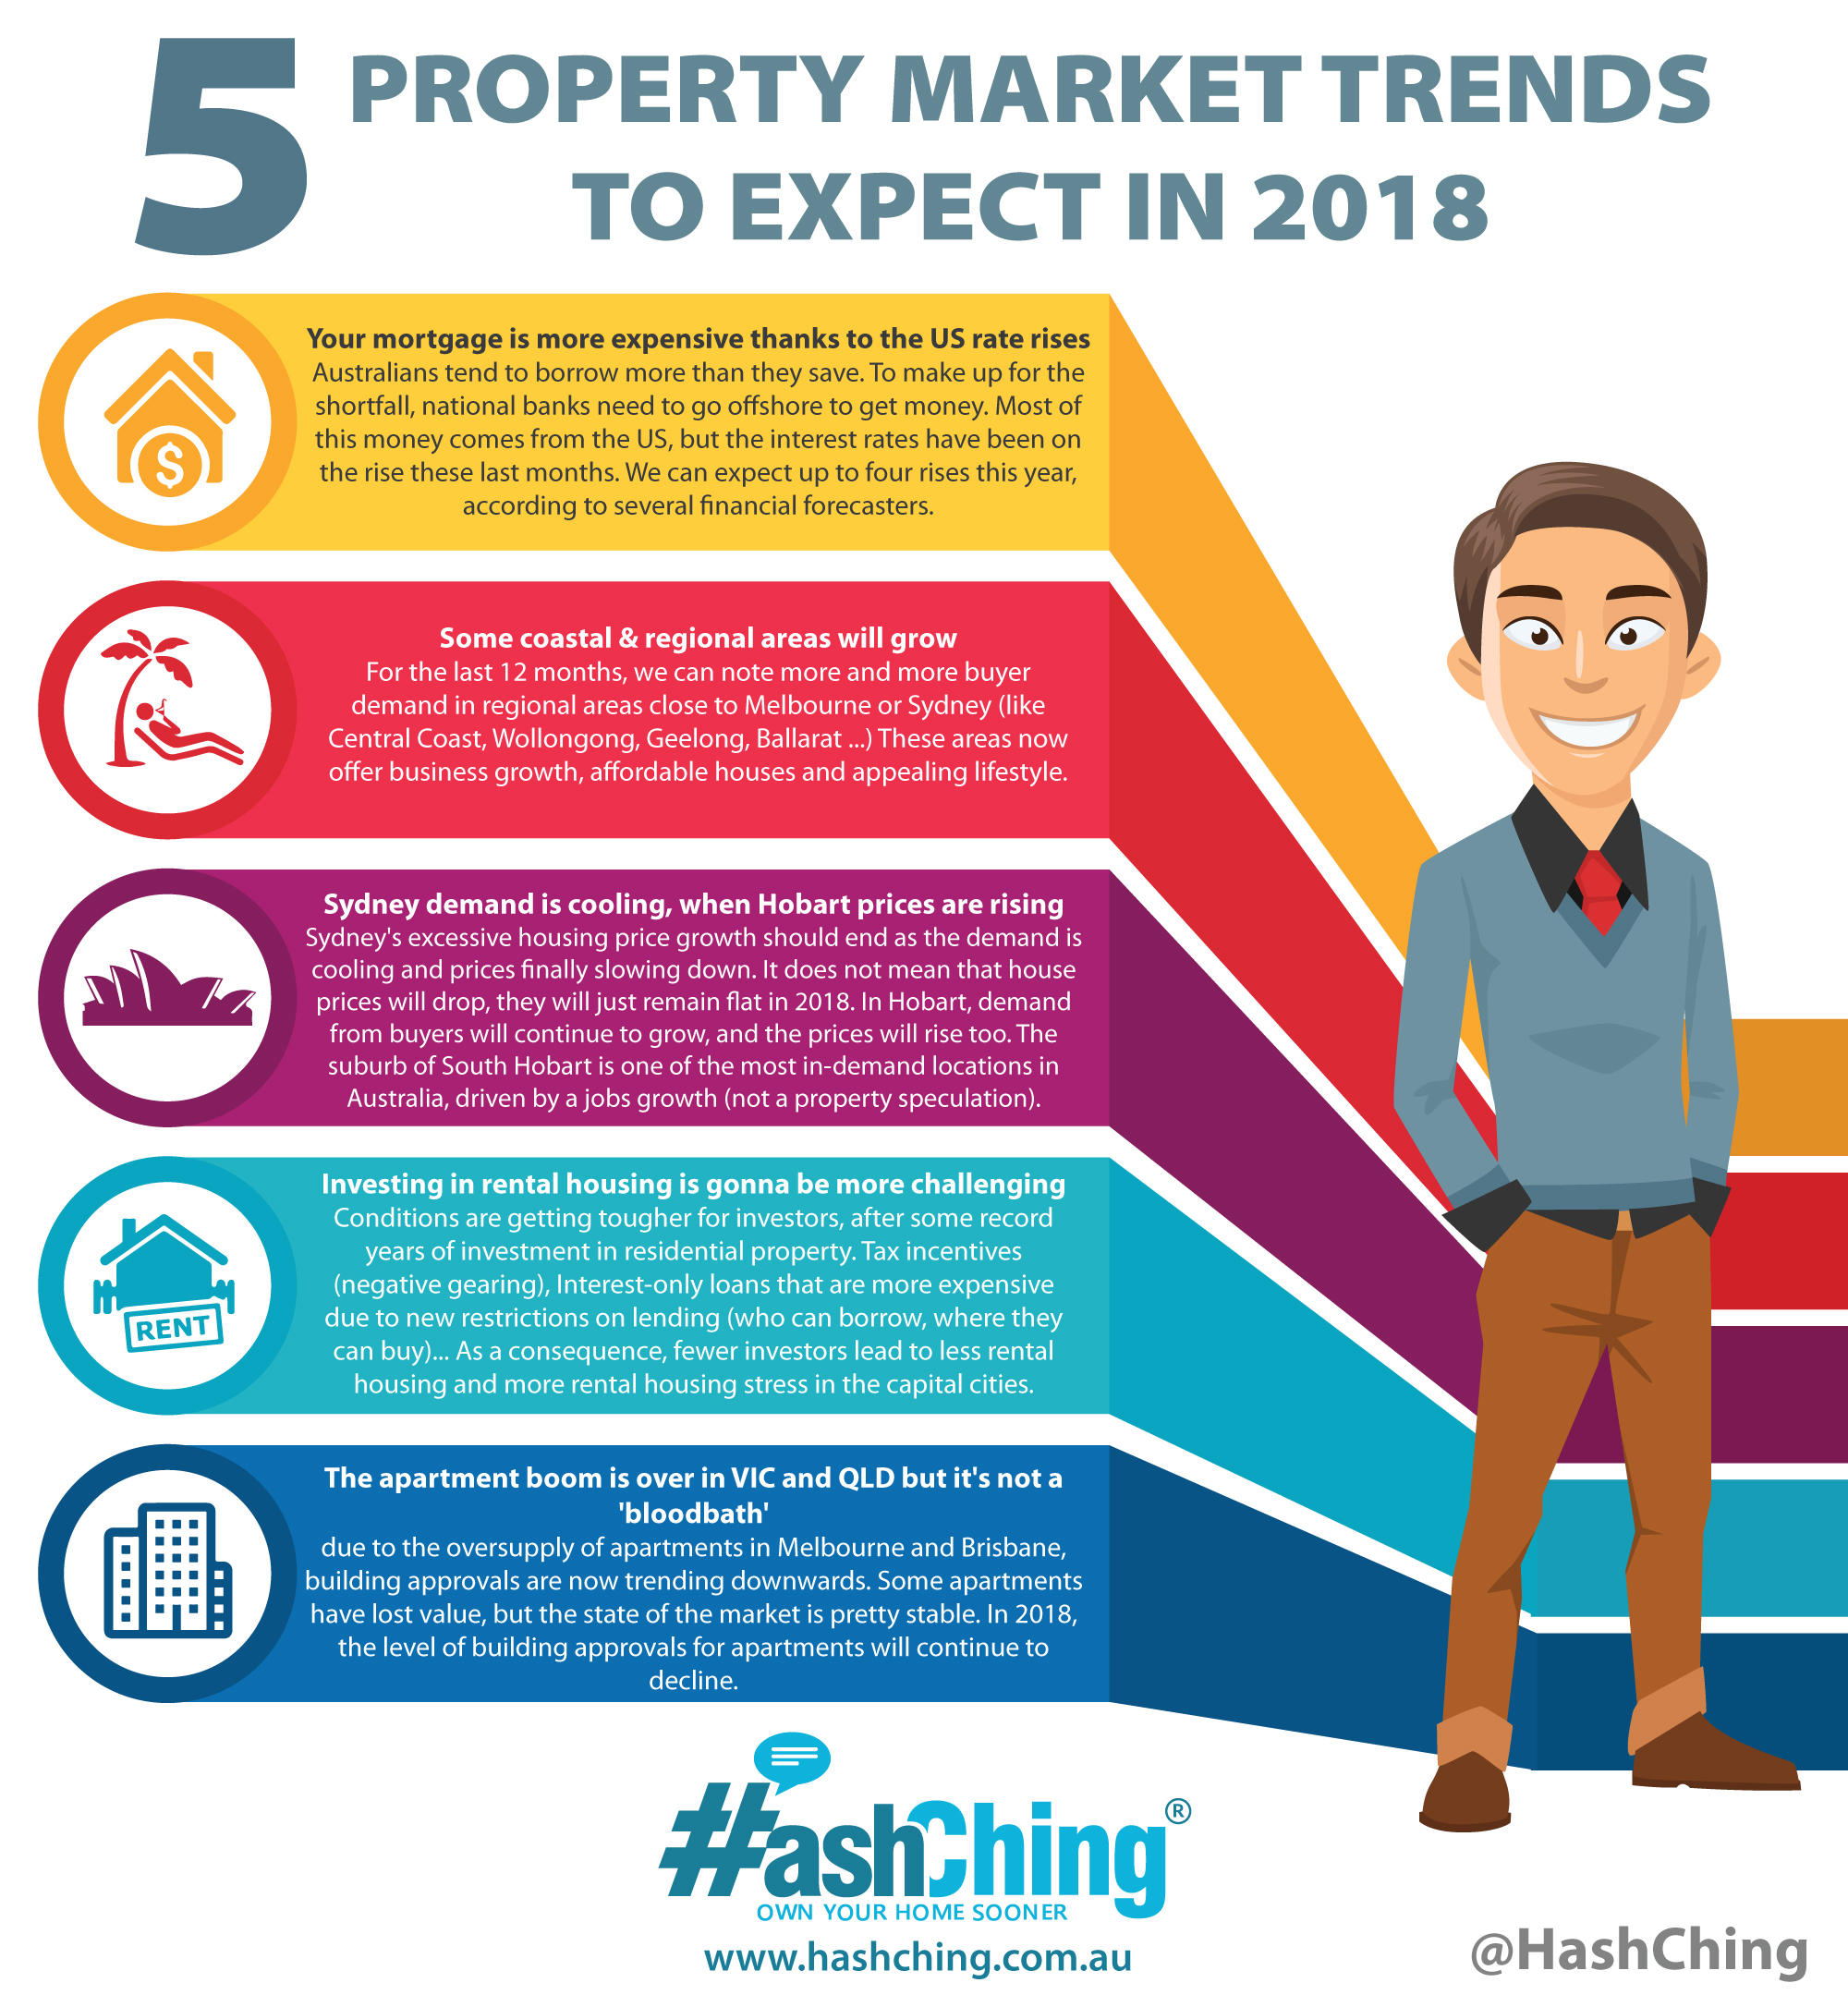 5 Property Market Trends to Expect in 2018